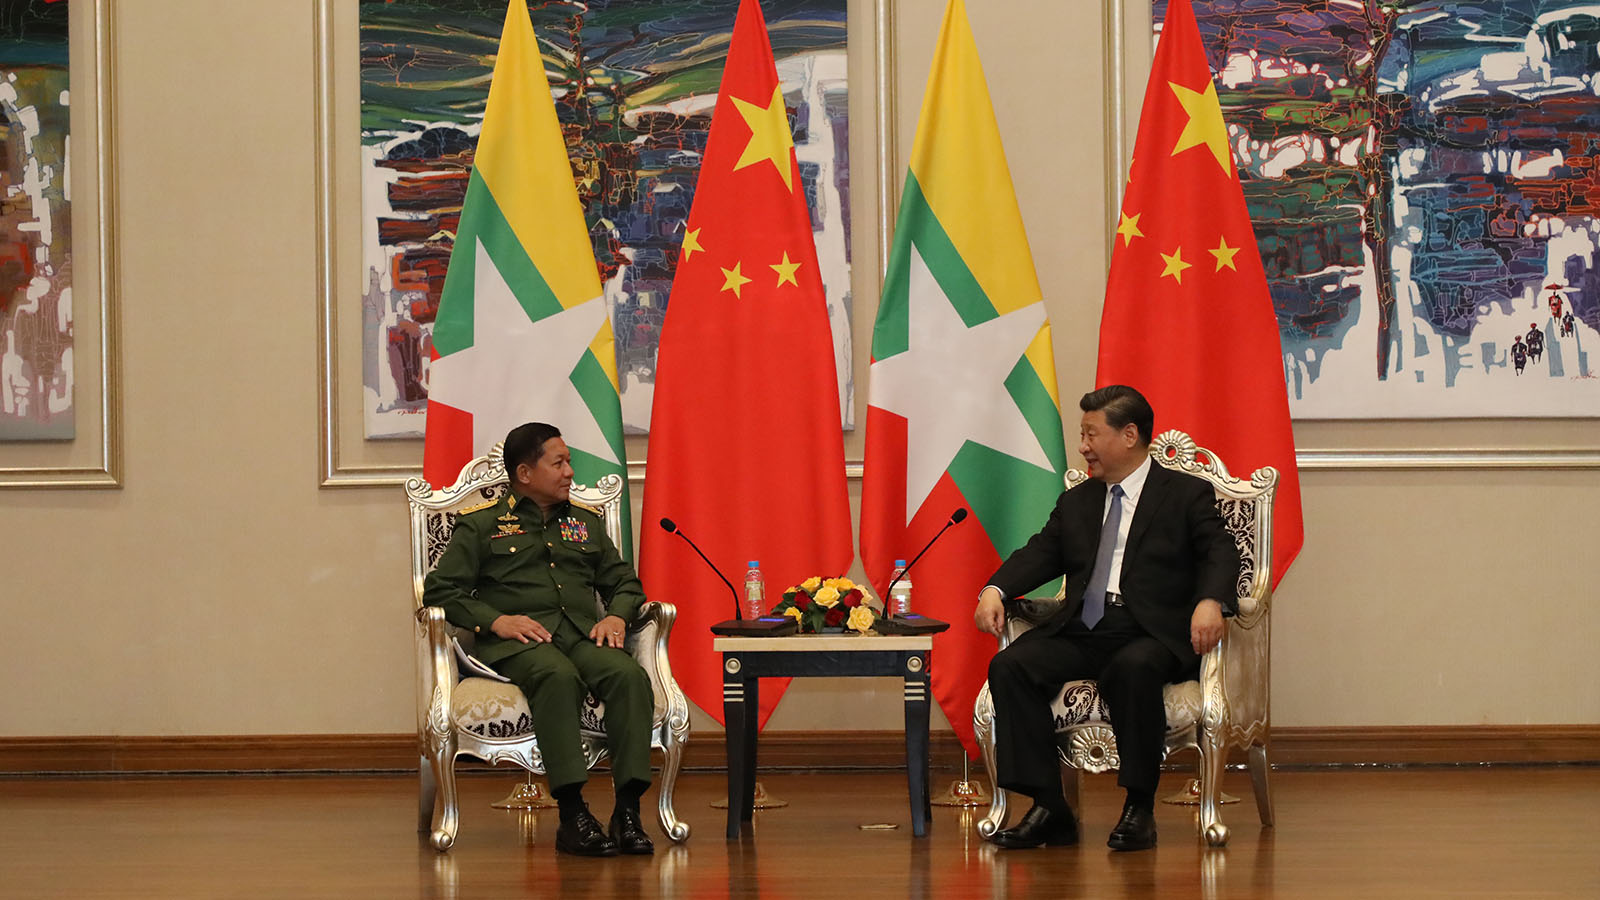 Senior General Min Aung Hlaing holds talk with President of the People's Republic of China, Mr Xi Jinping in Nay Pyi Taw yesterday. Photo: Office of the C-in-C of Defence Services